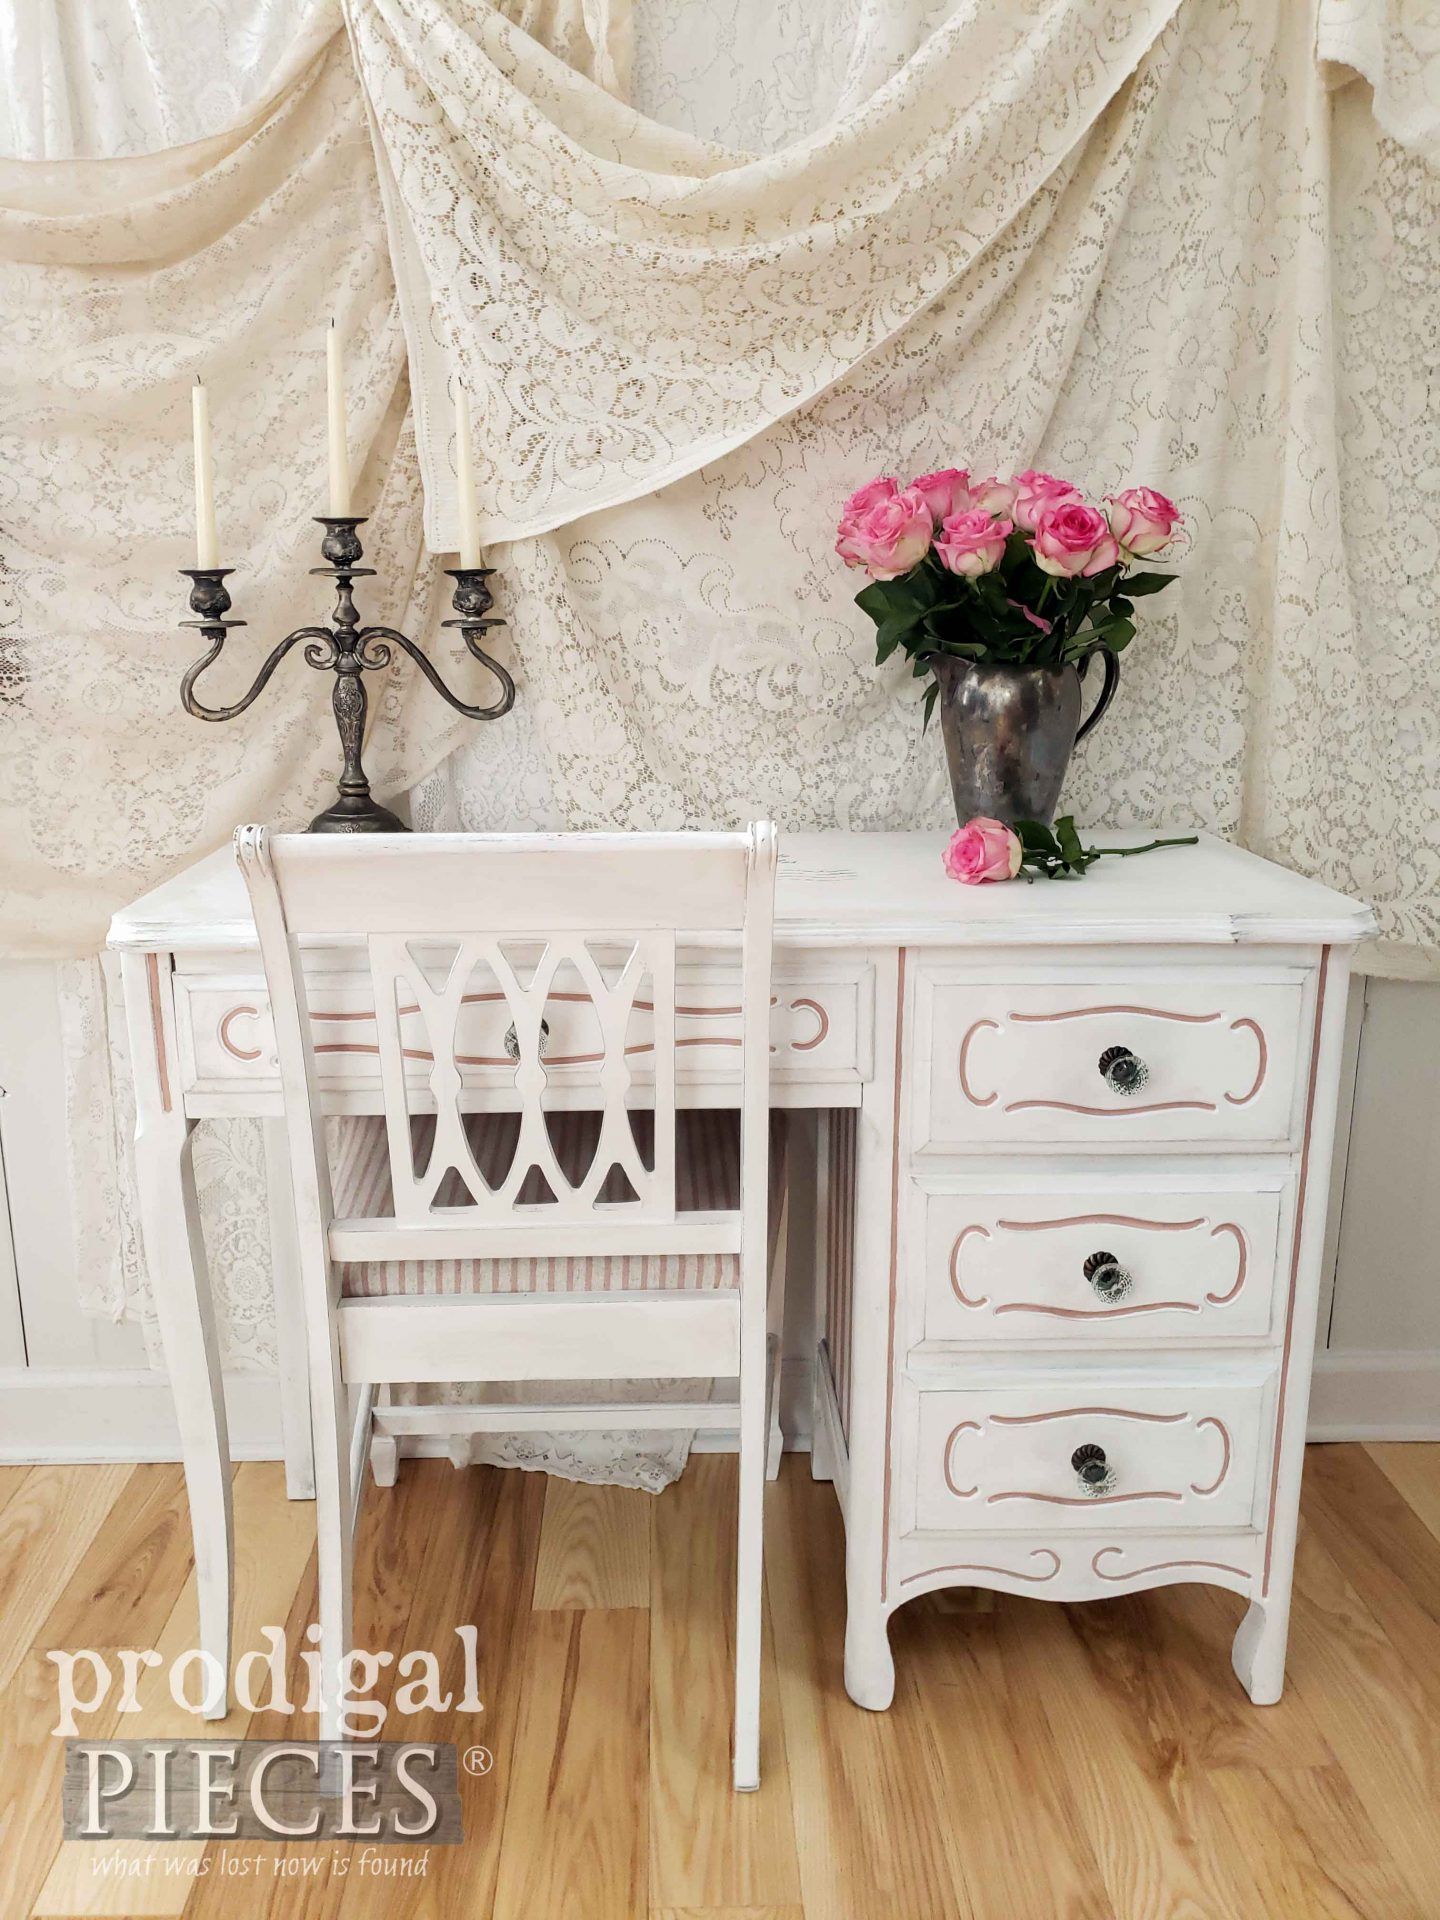 Vintage White French Provincial Desk Set with Shabby Chic Flair by Larissa of Prodigal Pieces | prodigalpieces.com #prodigalpieces #diy #home #shabbychic #furniture #homedecor